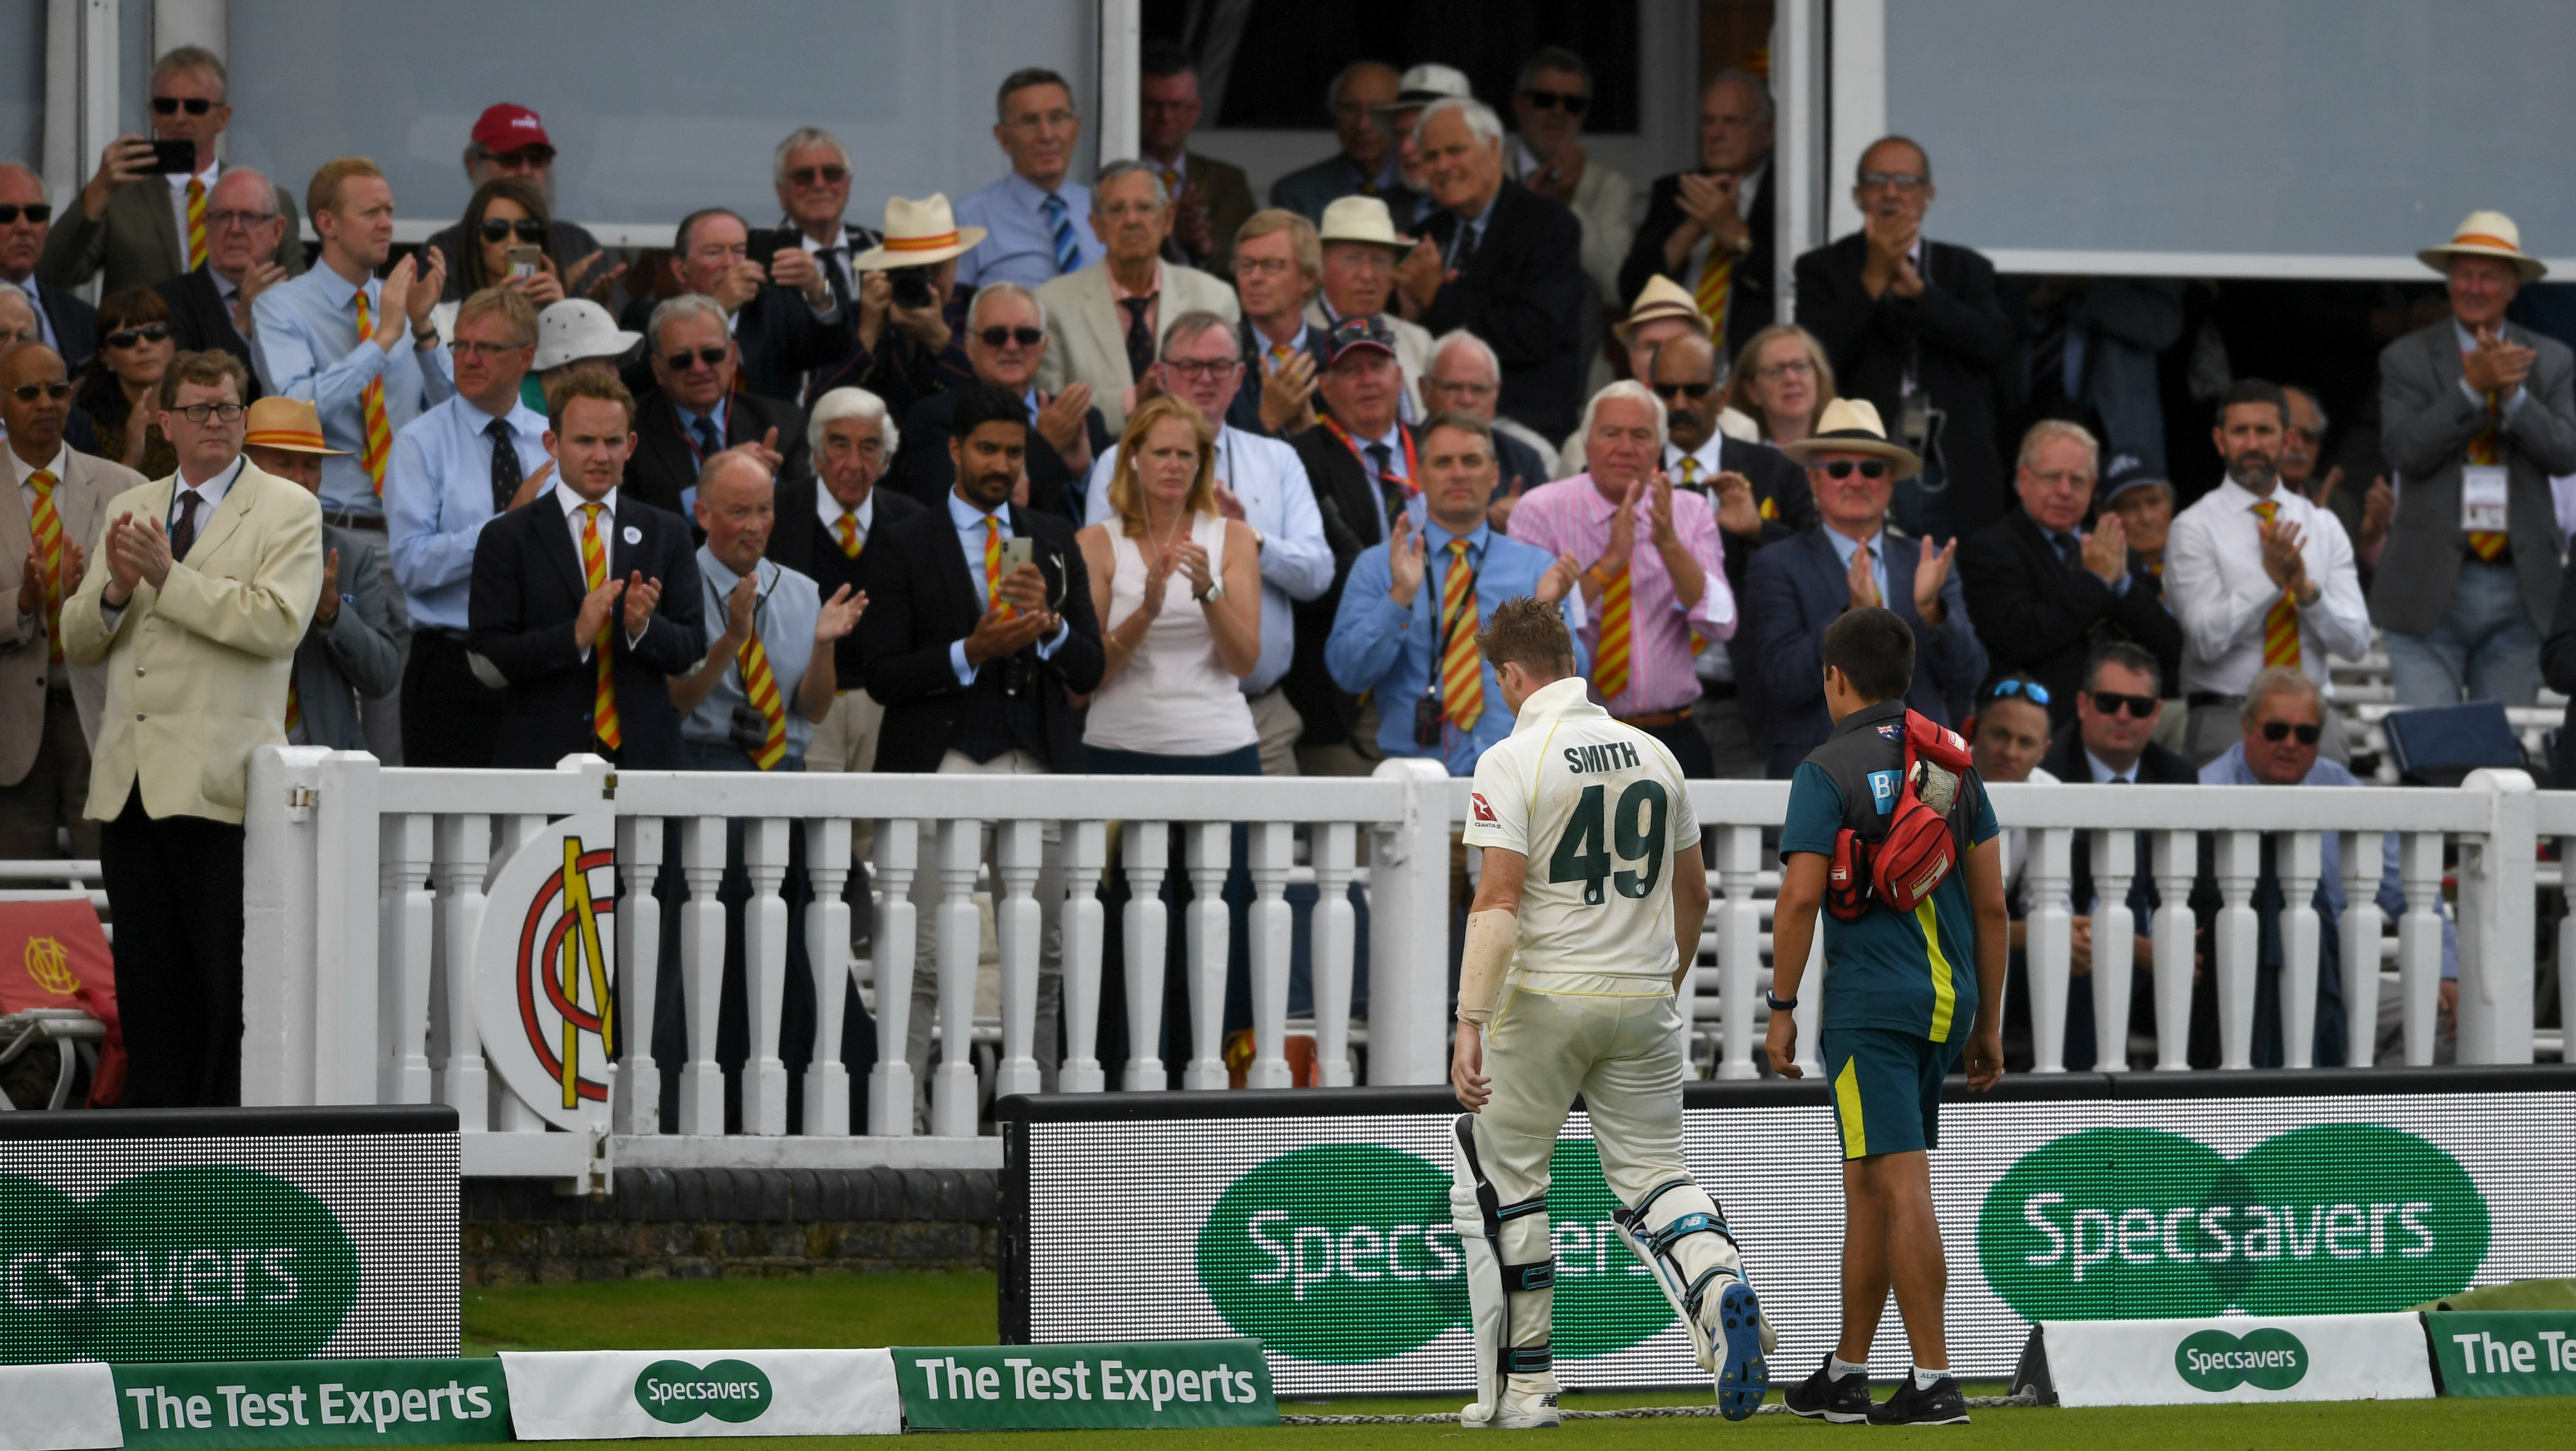 Ashes 2019: When did Australian cricket fans become so sooky?